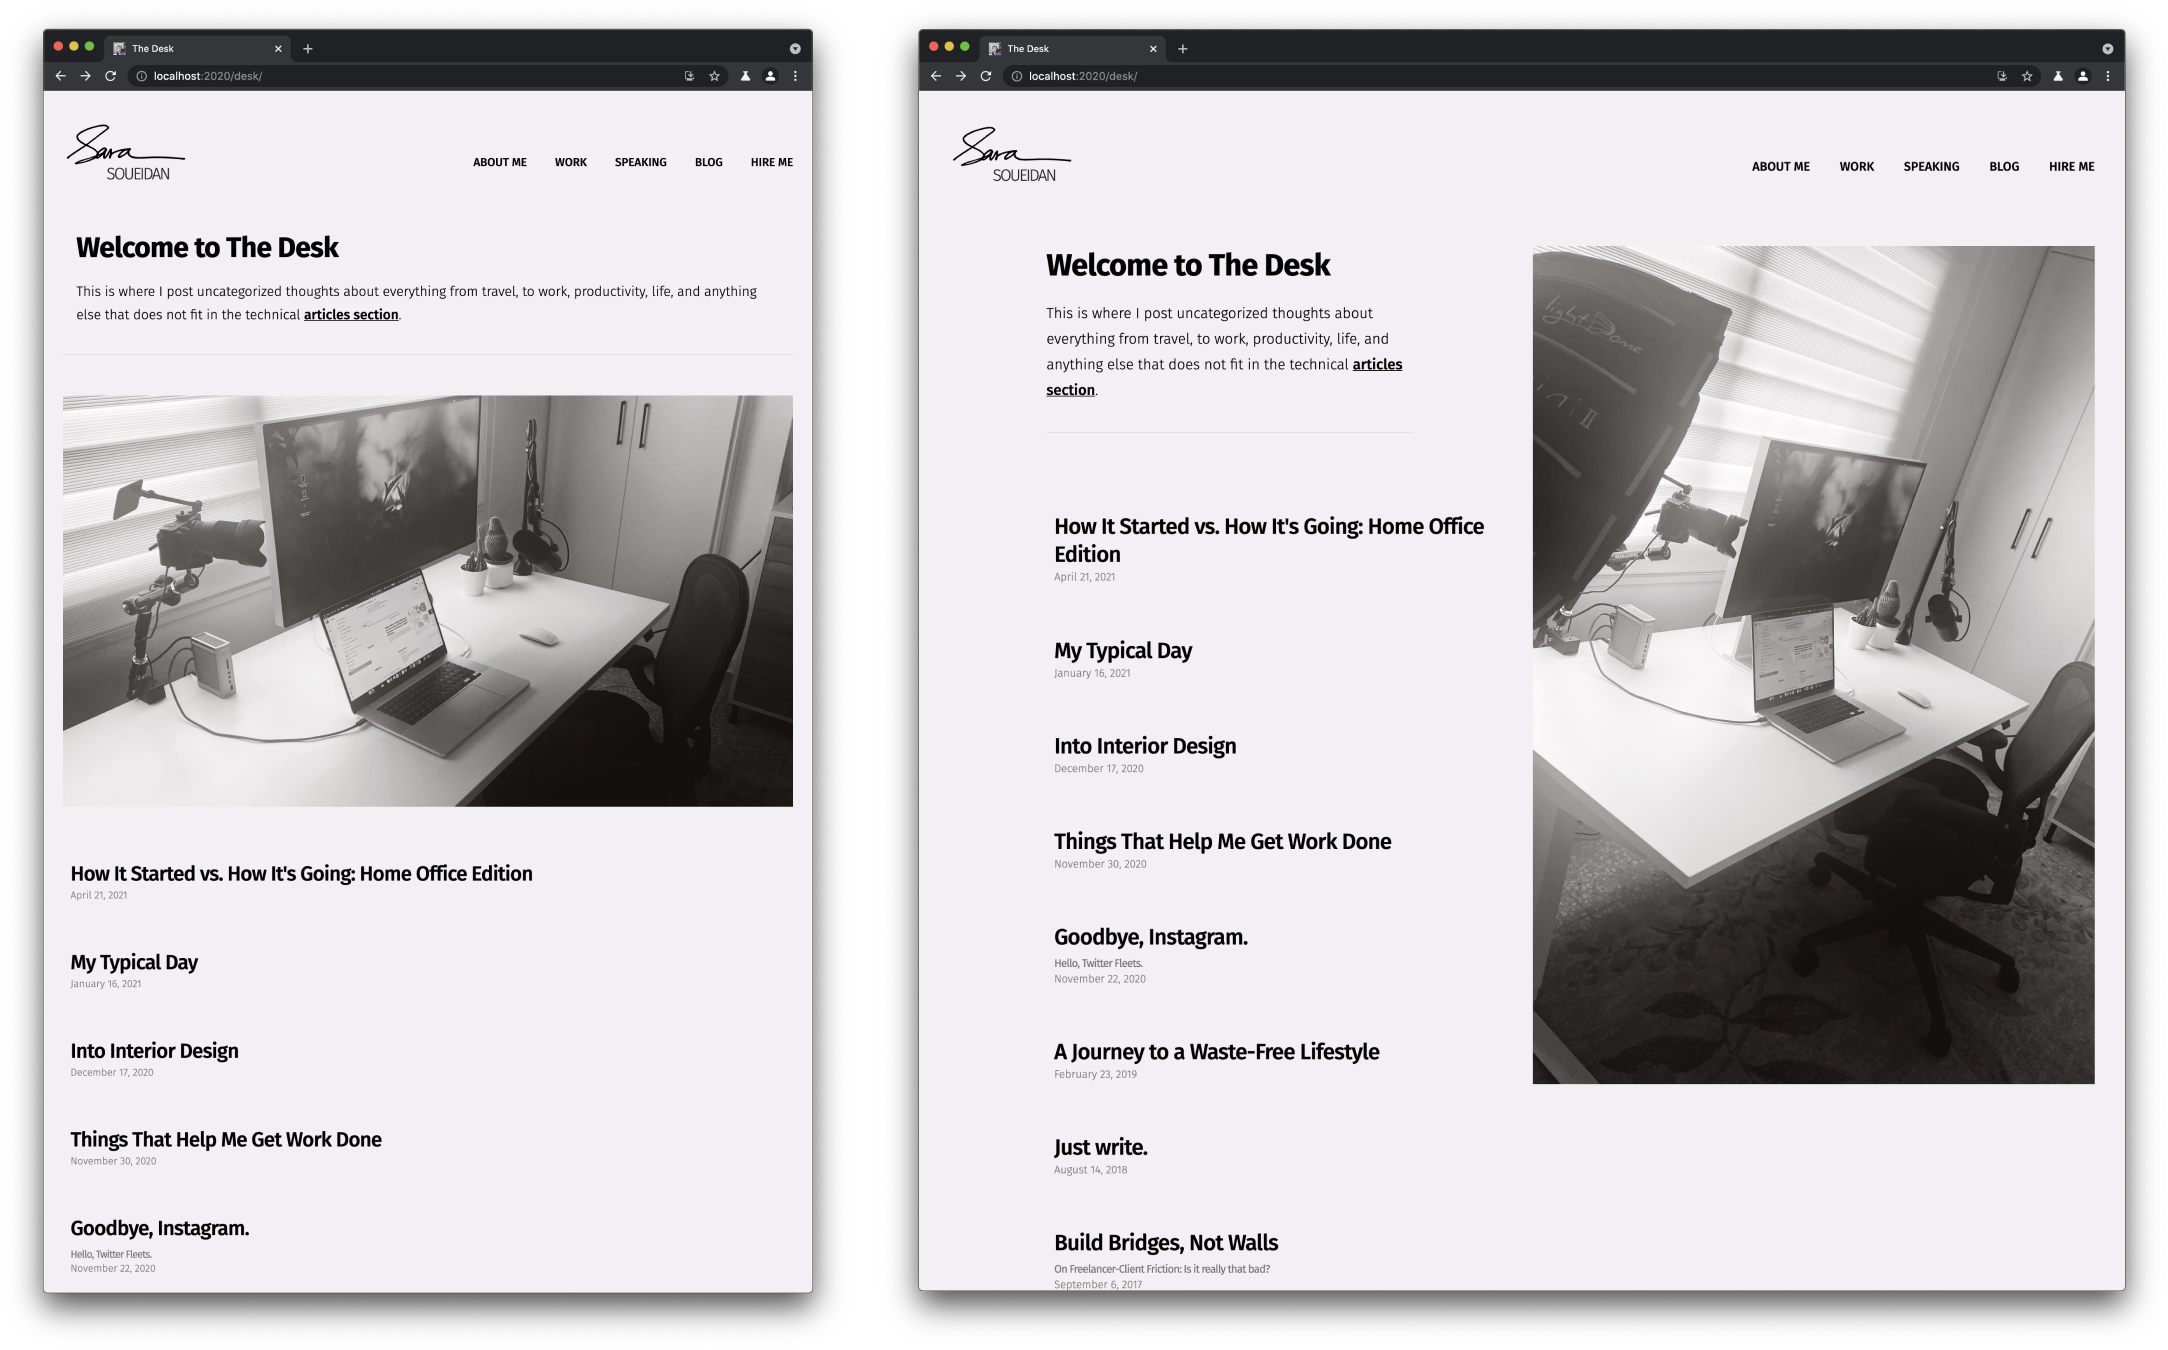 A screenshot of the Desk page showing two different photos of my desk setup on narrower and wider screens.